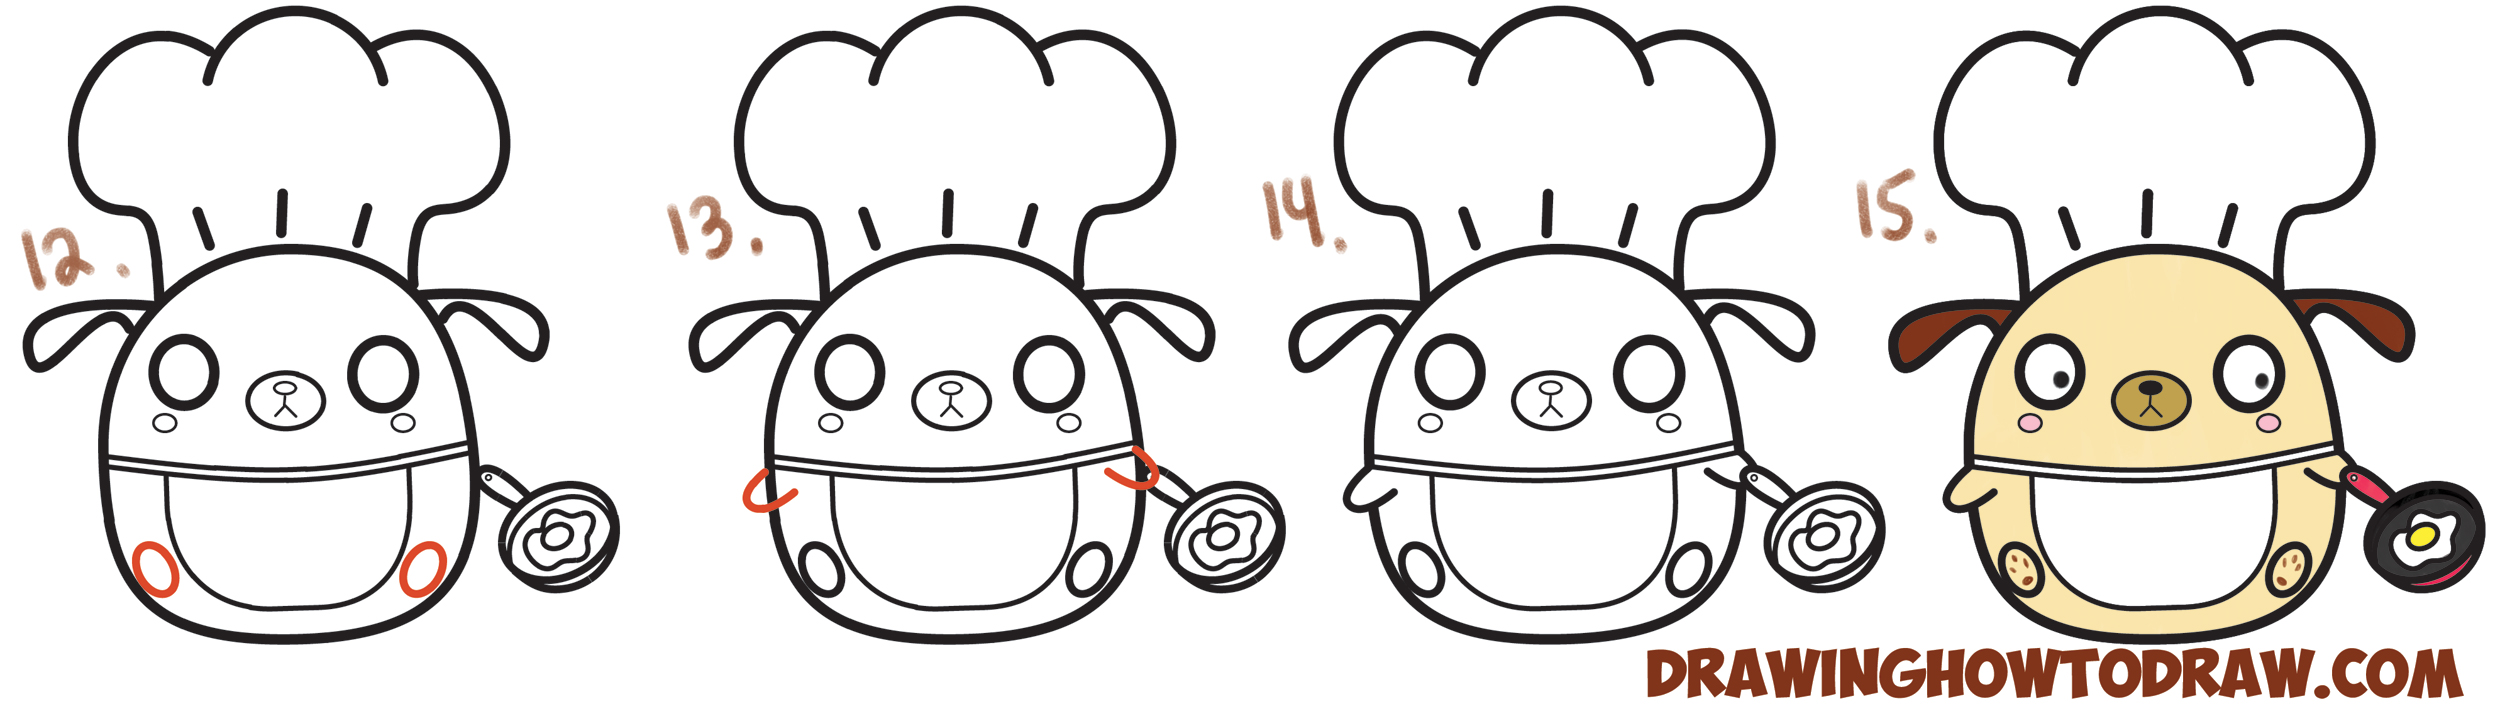 How to Draw Cute Kawaii Chibi Dog Chef Cooking from Question